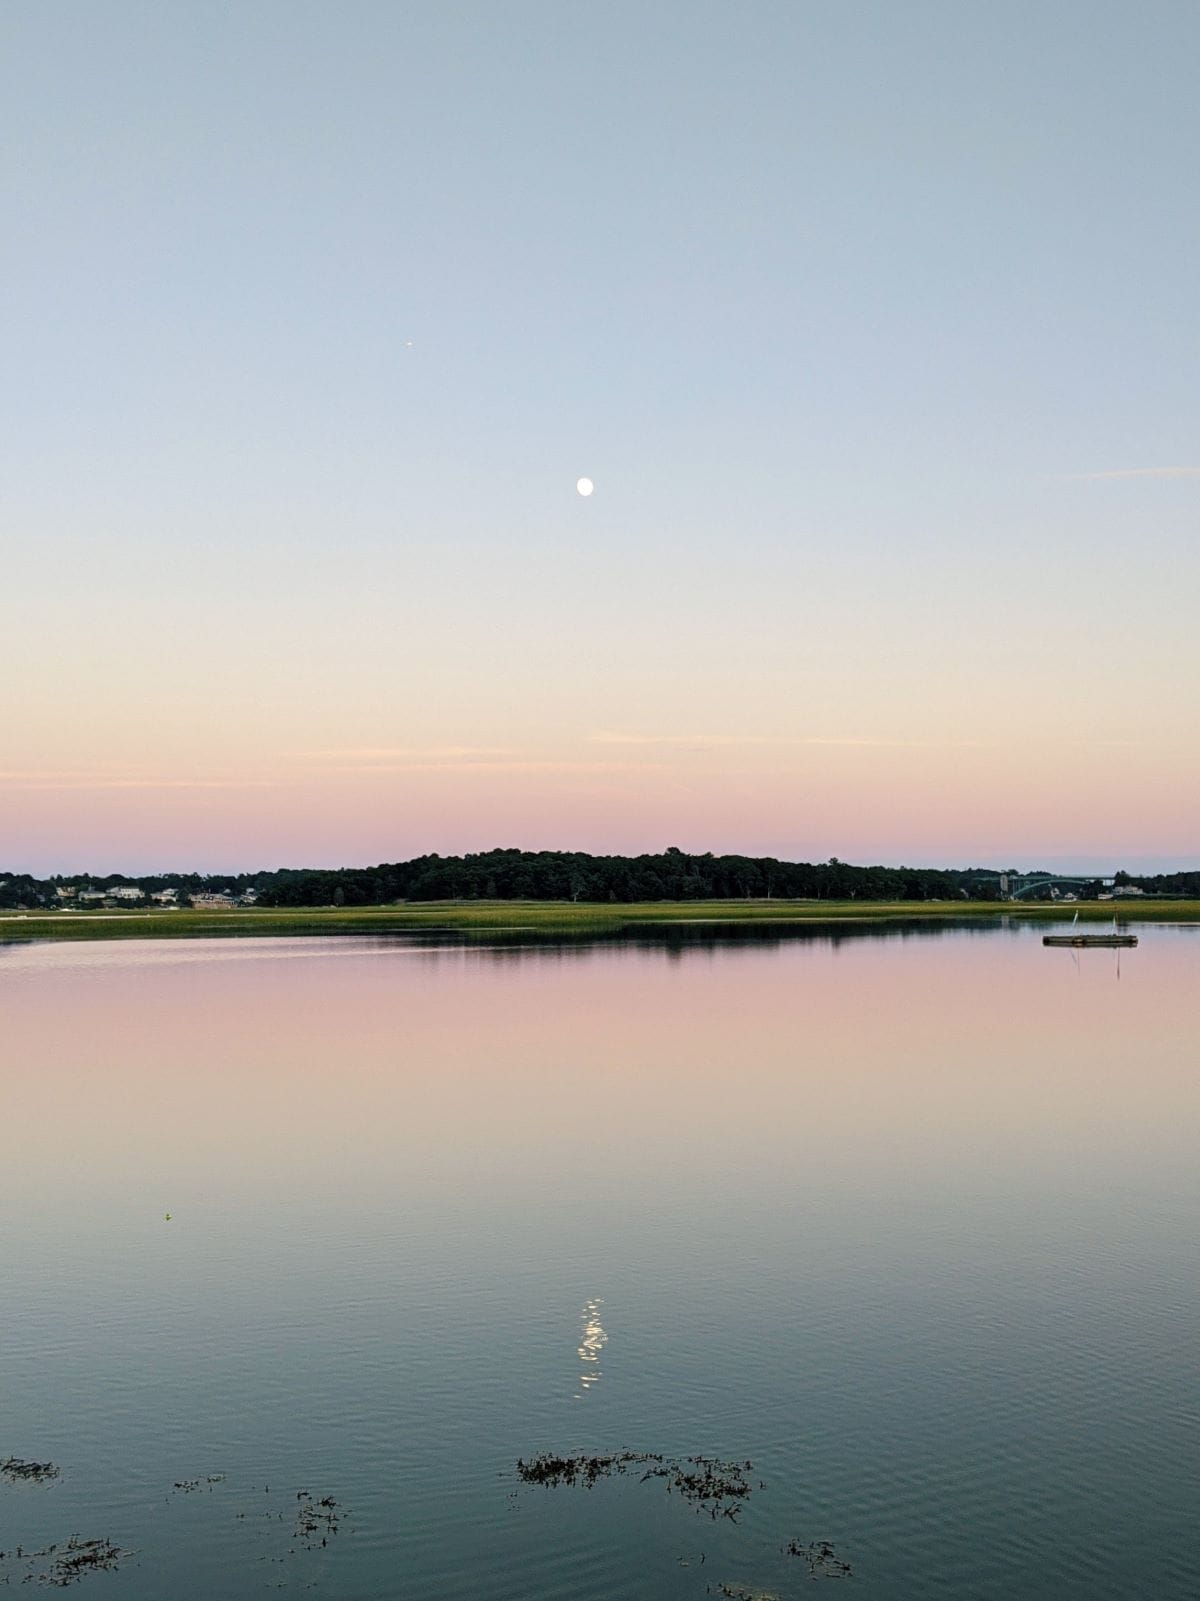 The pink sunset at Jones Salt Marsh, with a small moon visible and reflected in the light blue water